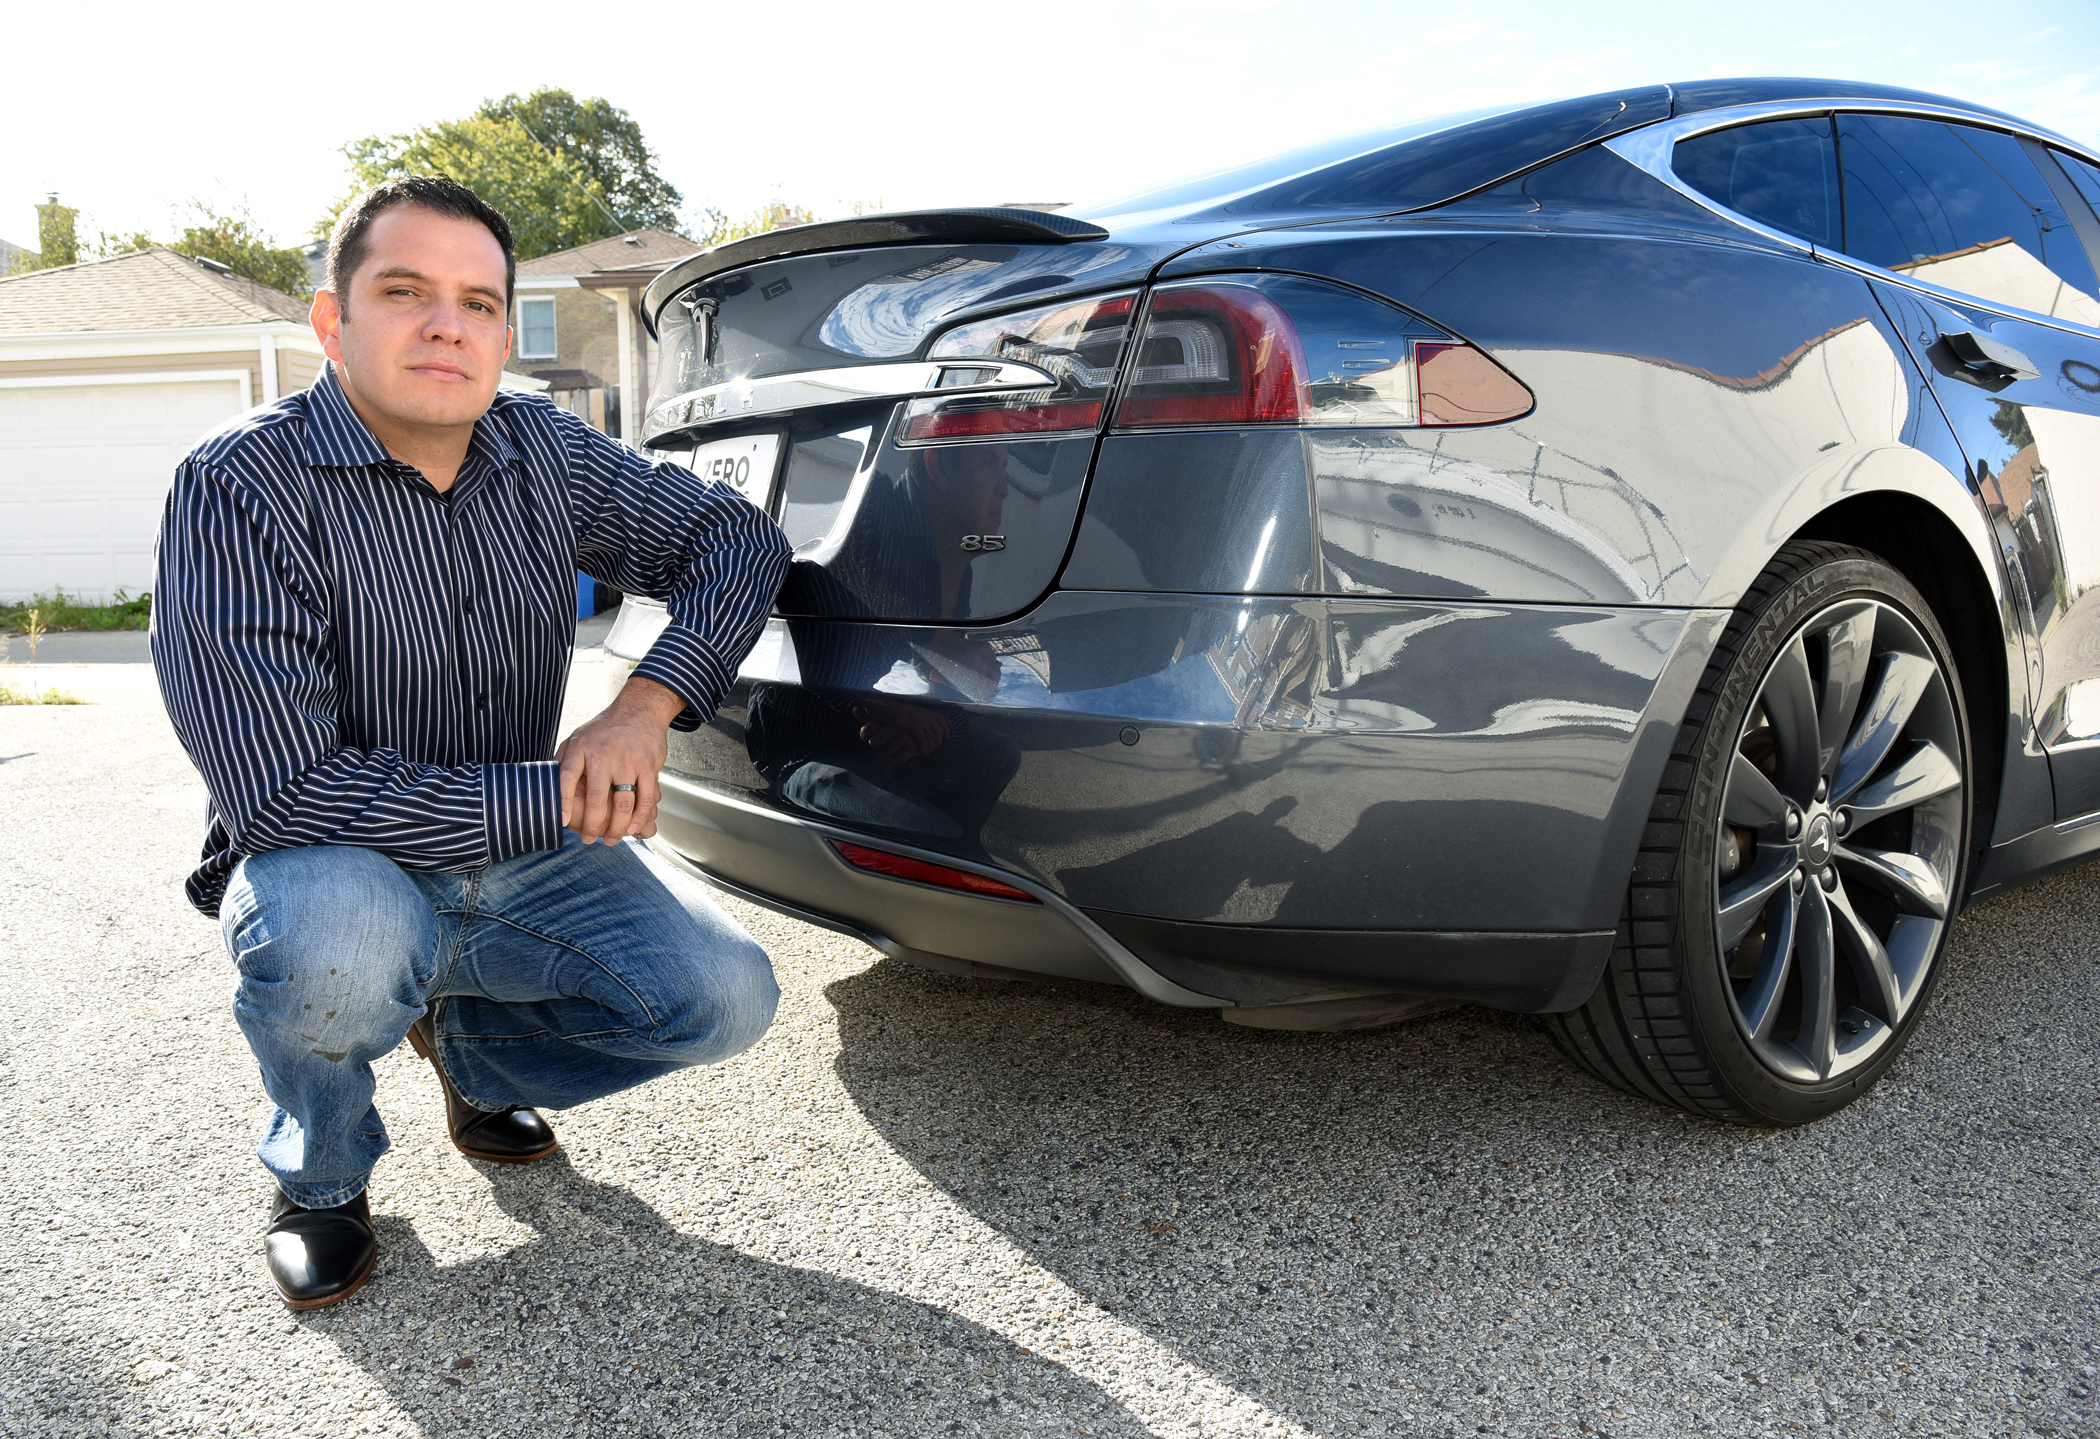 Guillermo Perez, a Chicago firefighter, says his 2014 Tesla Model S85 saw a sudden drop in range after an automatic software update to the battery system.